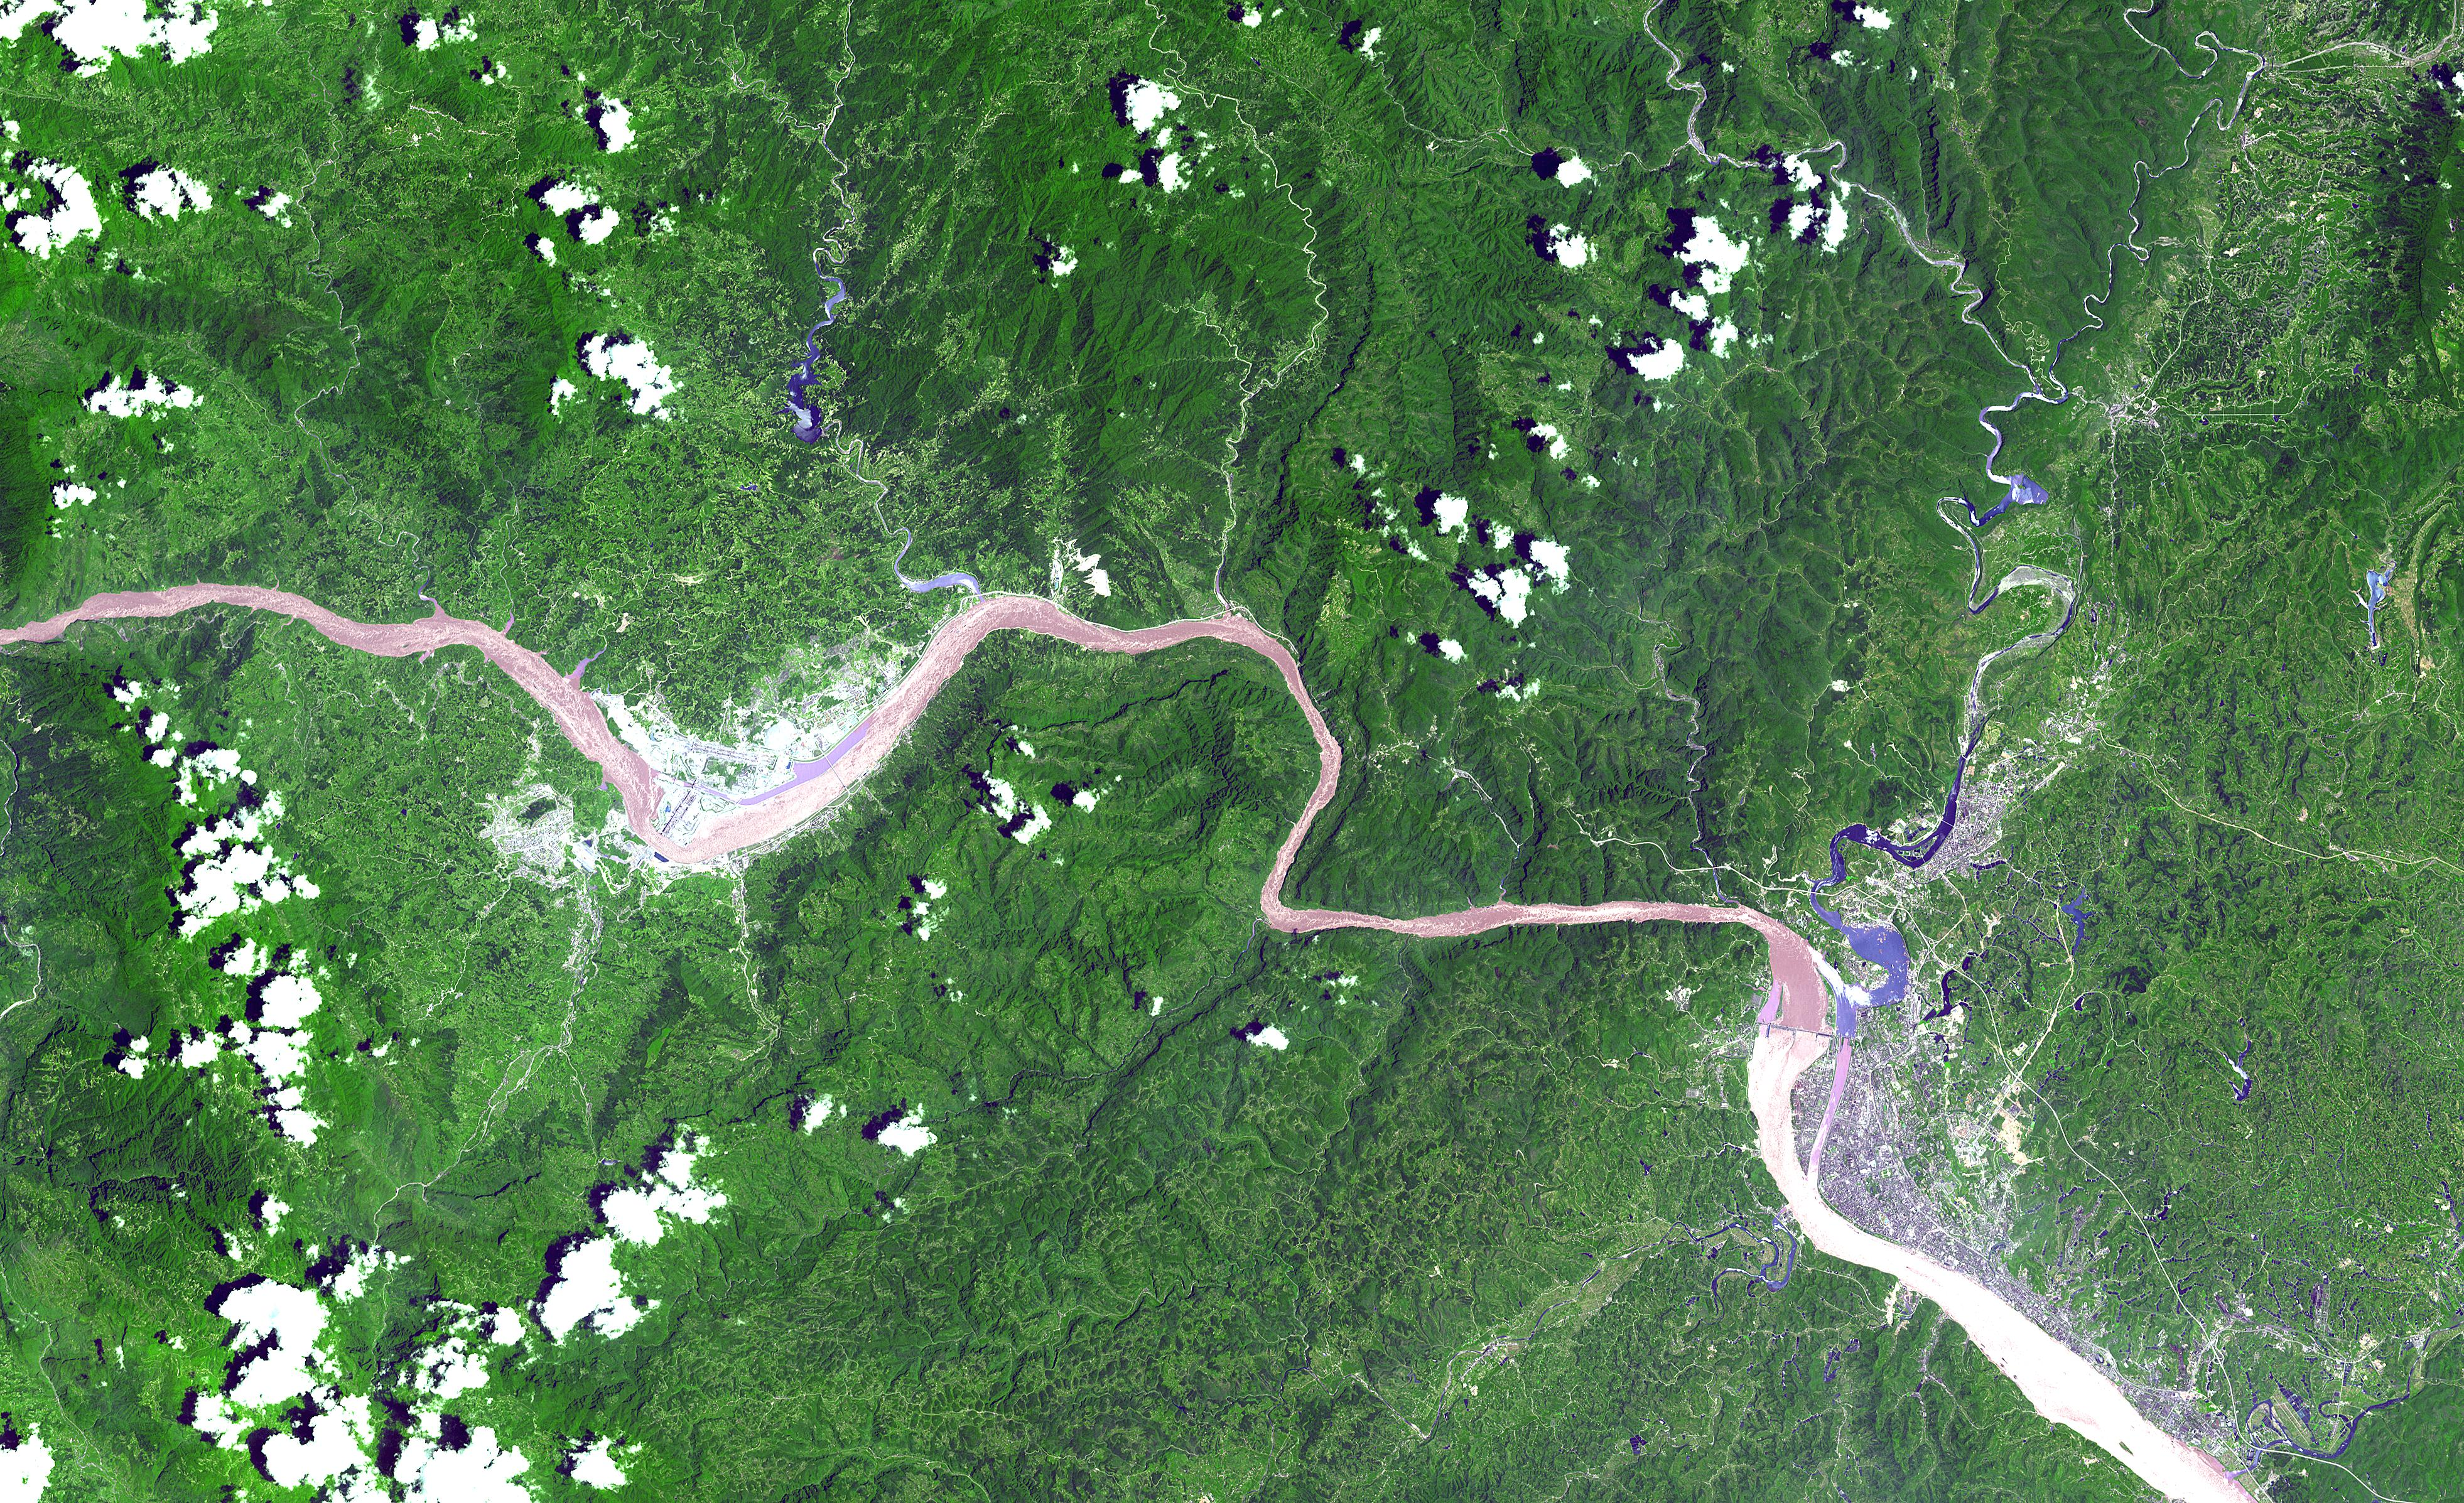 Three gorges dam project china s biggest project since the great wall - Three_gorges_dam_from_space Published January 4 2013 At 3924 2394 In Three Gorges Dam Project China S Biggest Project Since The Great Wall